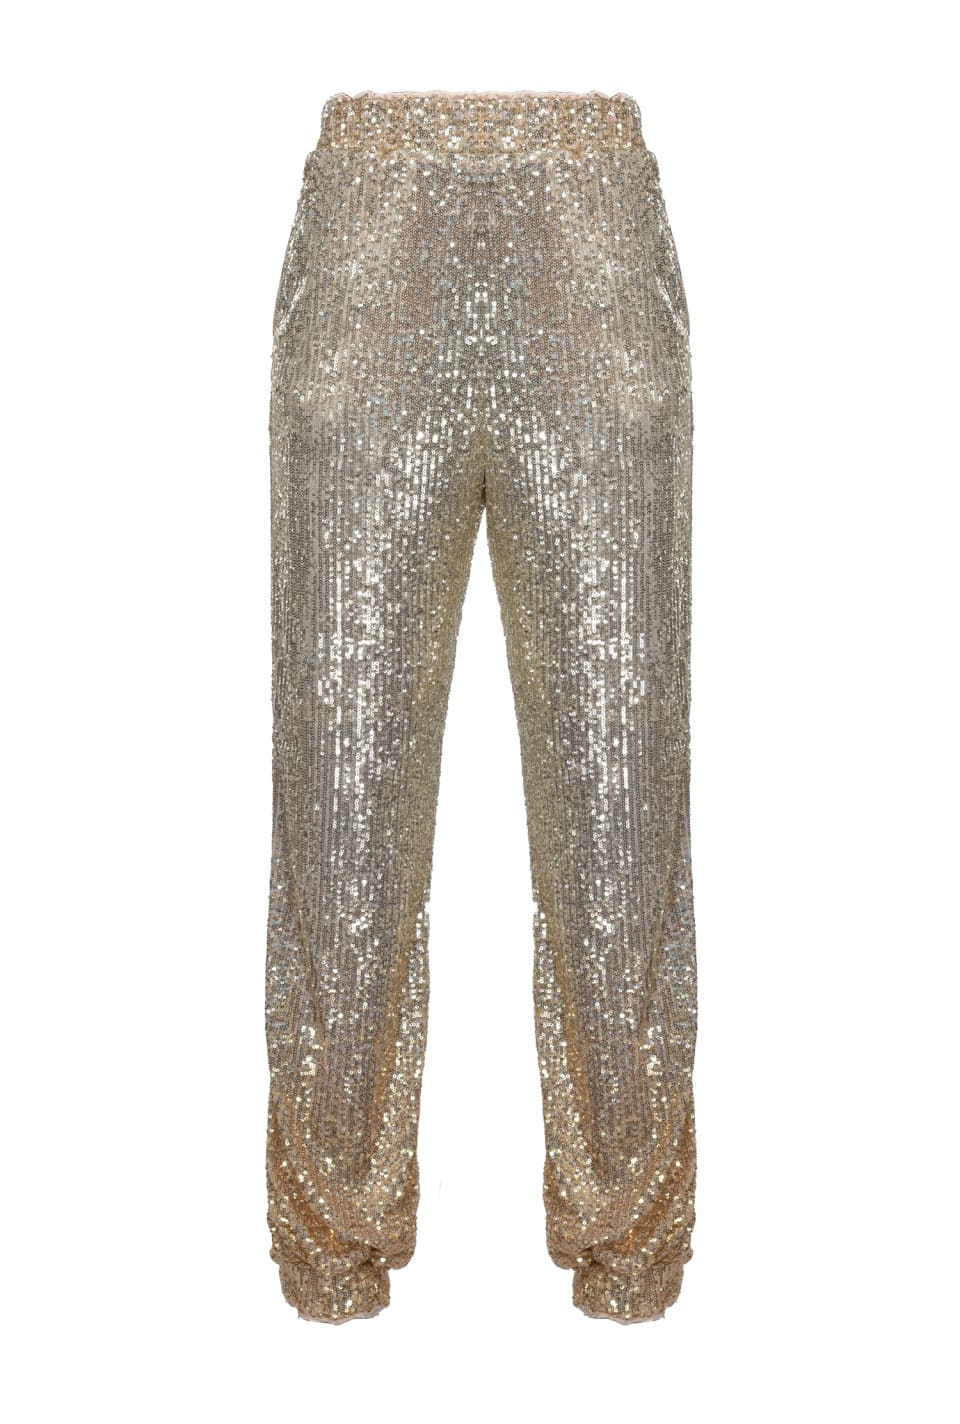 All-over ombré sequin joggers - Pinko